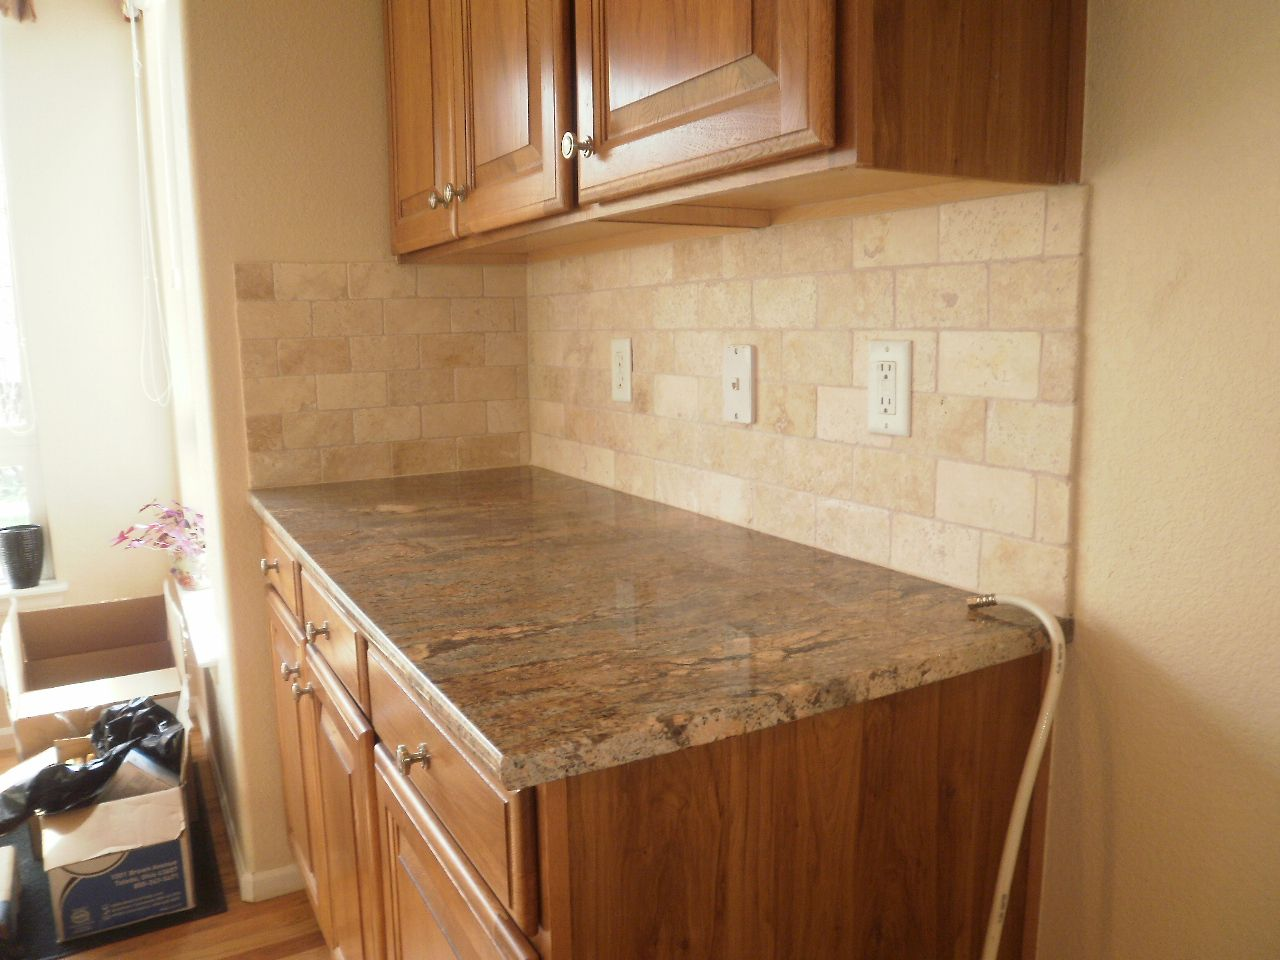 Travertine Tile Patterns For Kitchens Range Backsplash 3x6 Tumbled Ivory